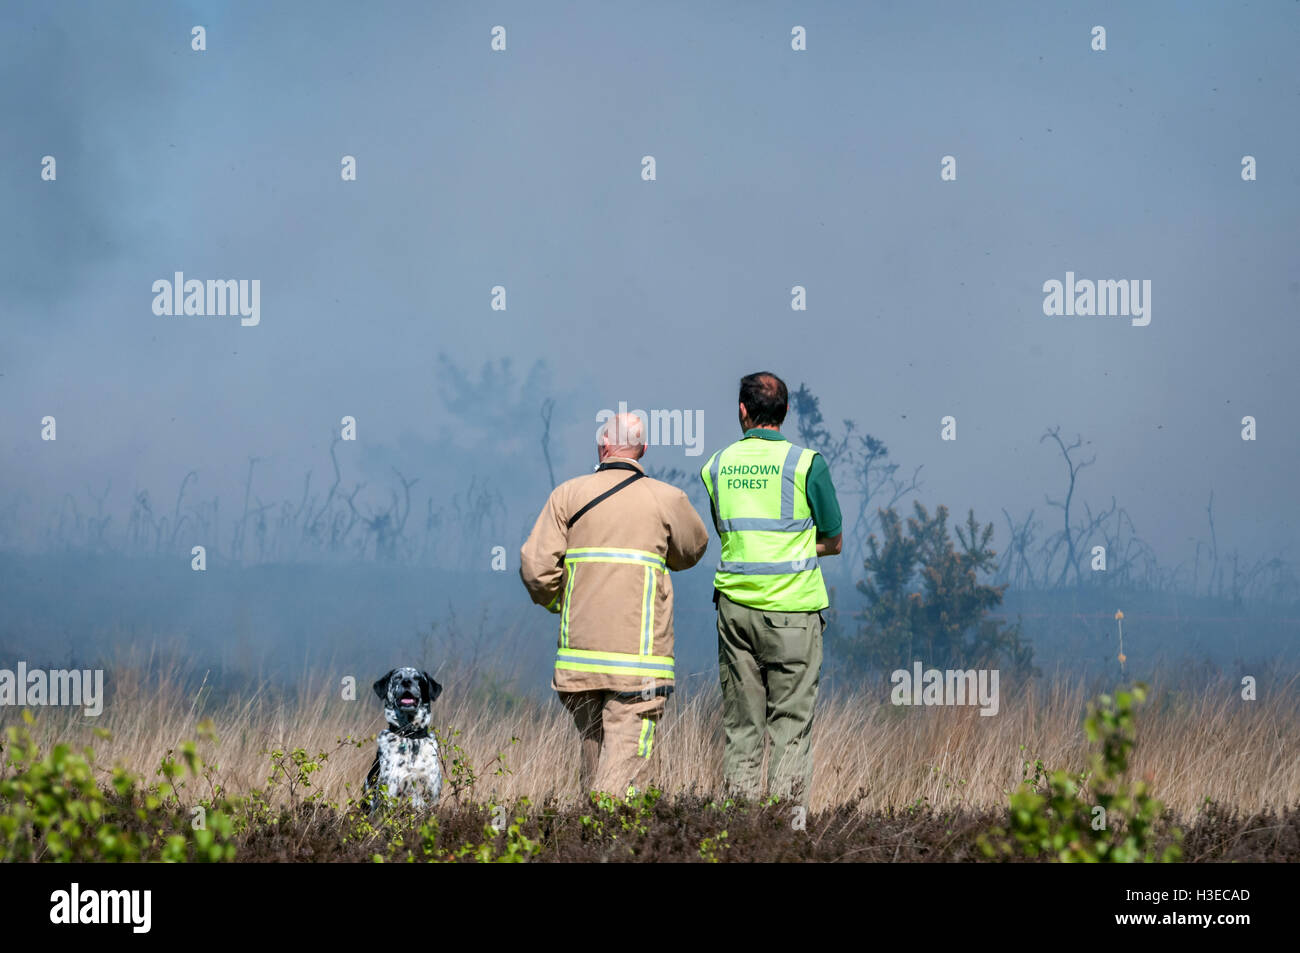 Ashdown Forest on fire, spreading fast and the Fire Brigade are making plans for local evacuation. - Stock Image